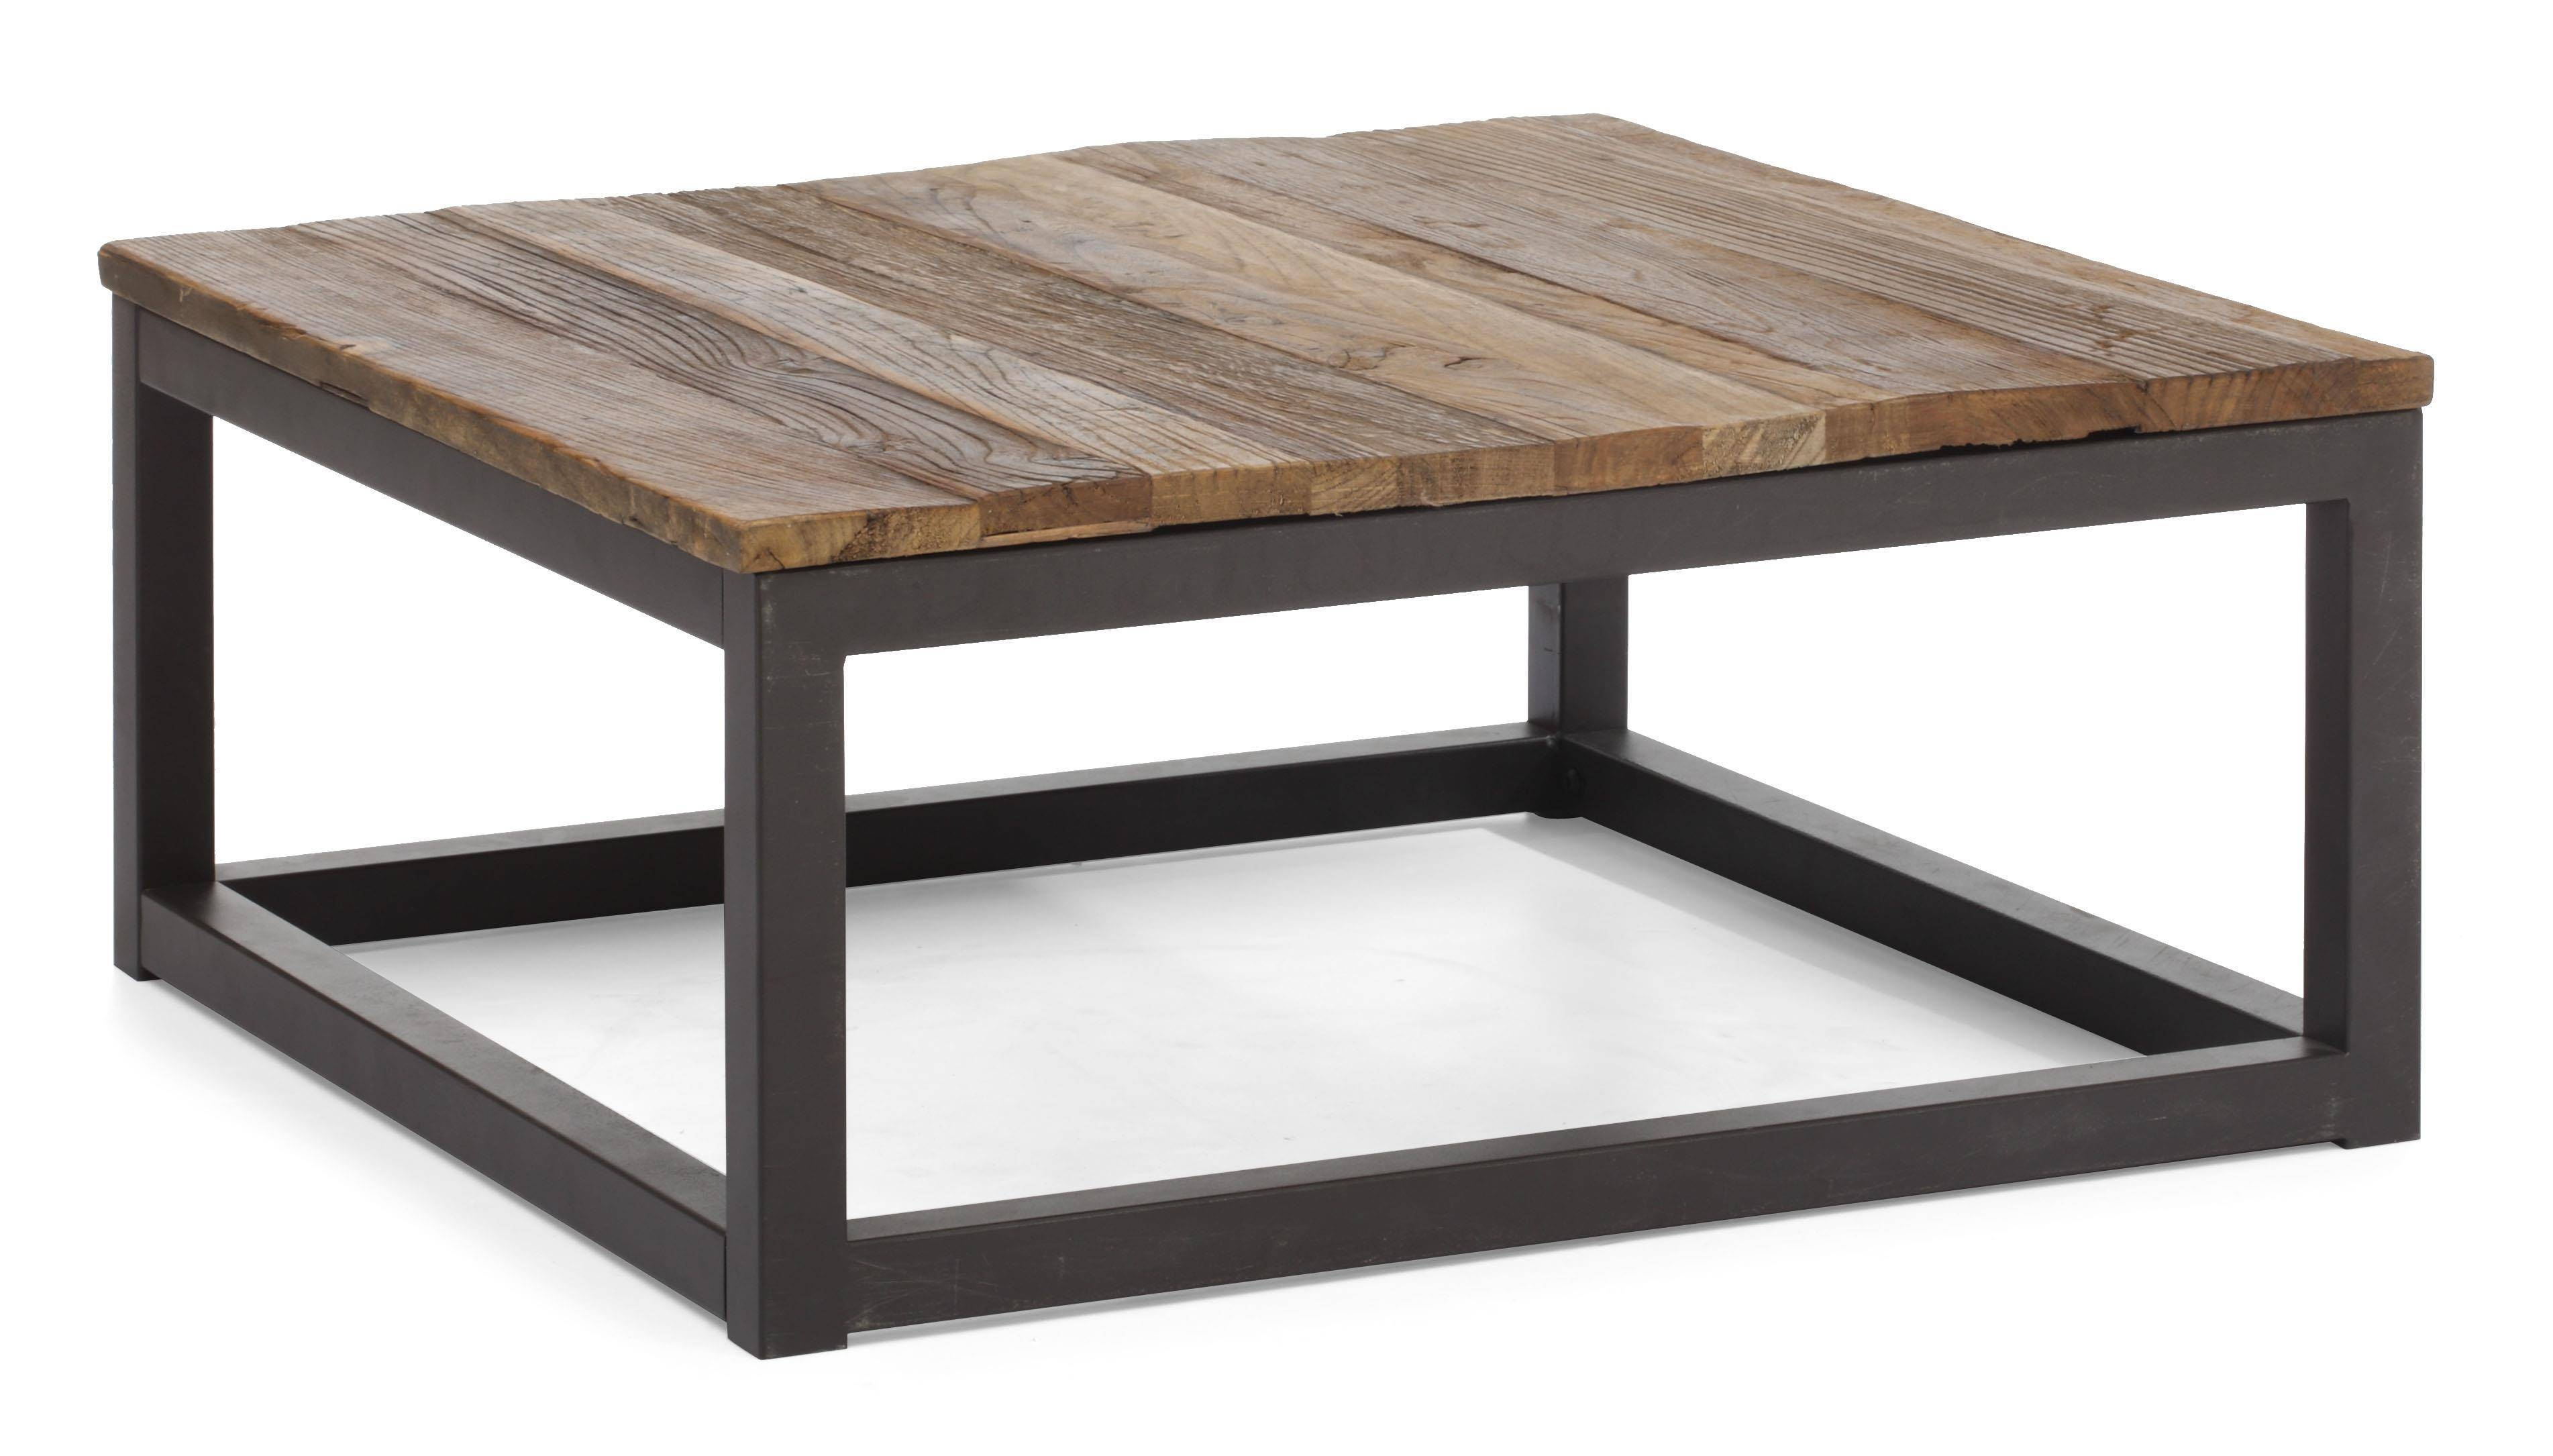 2017 Best of Low Height Coffee Tables